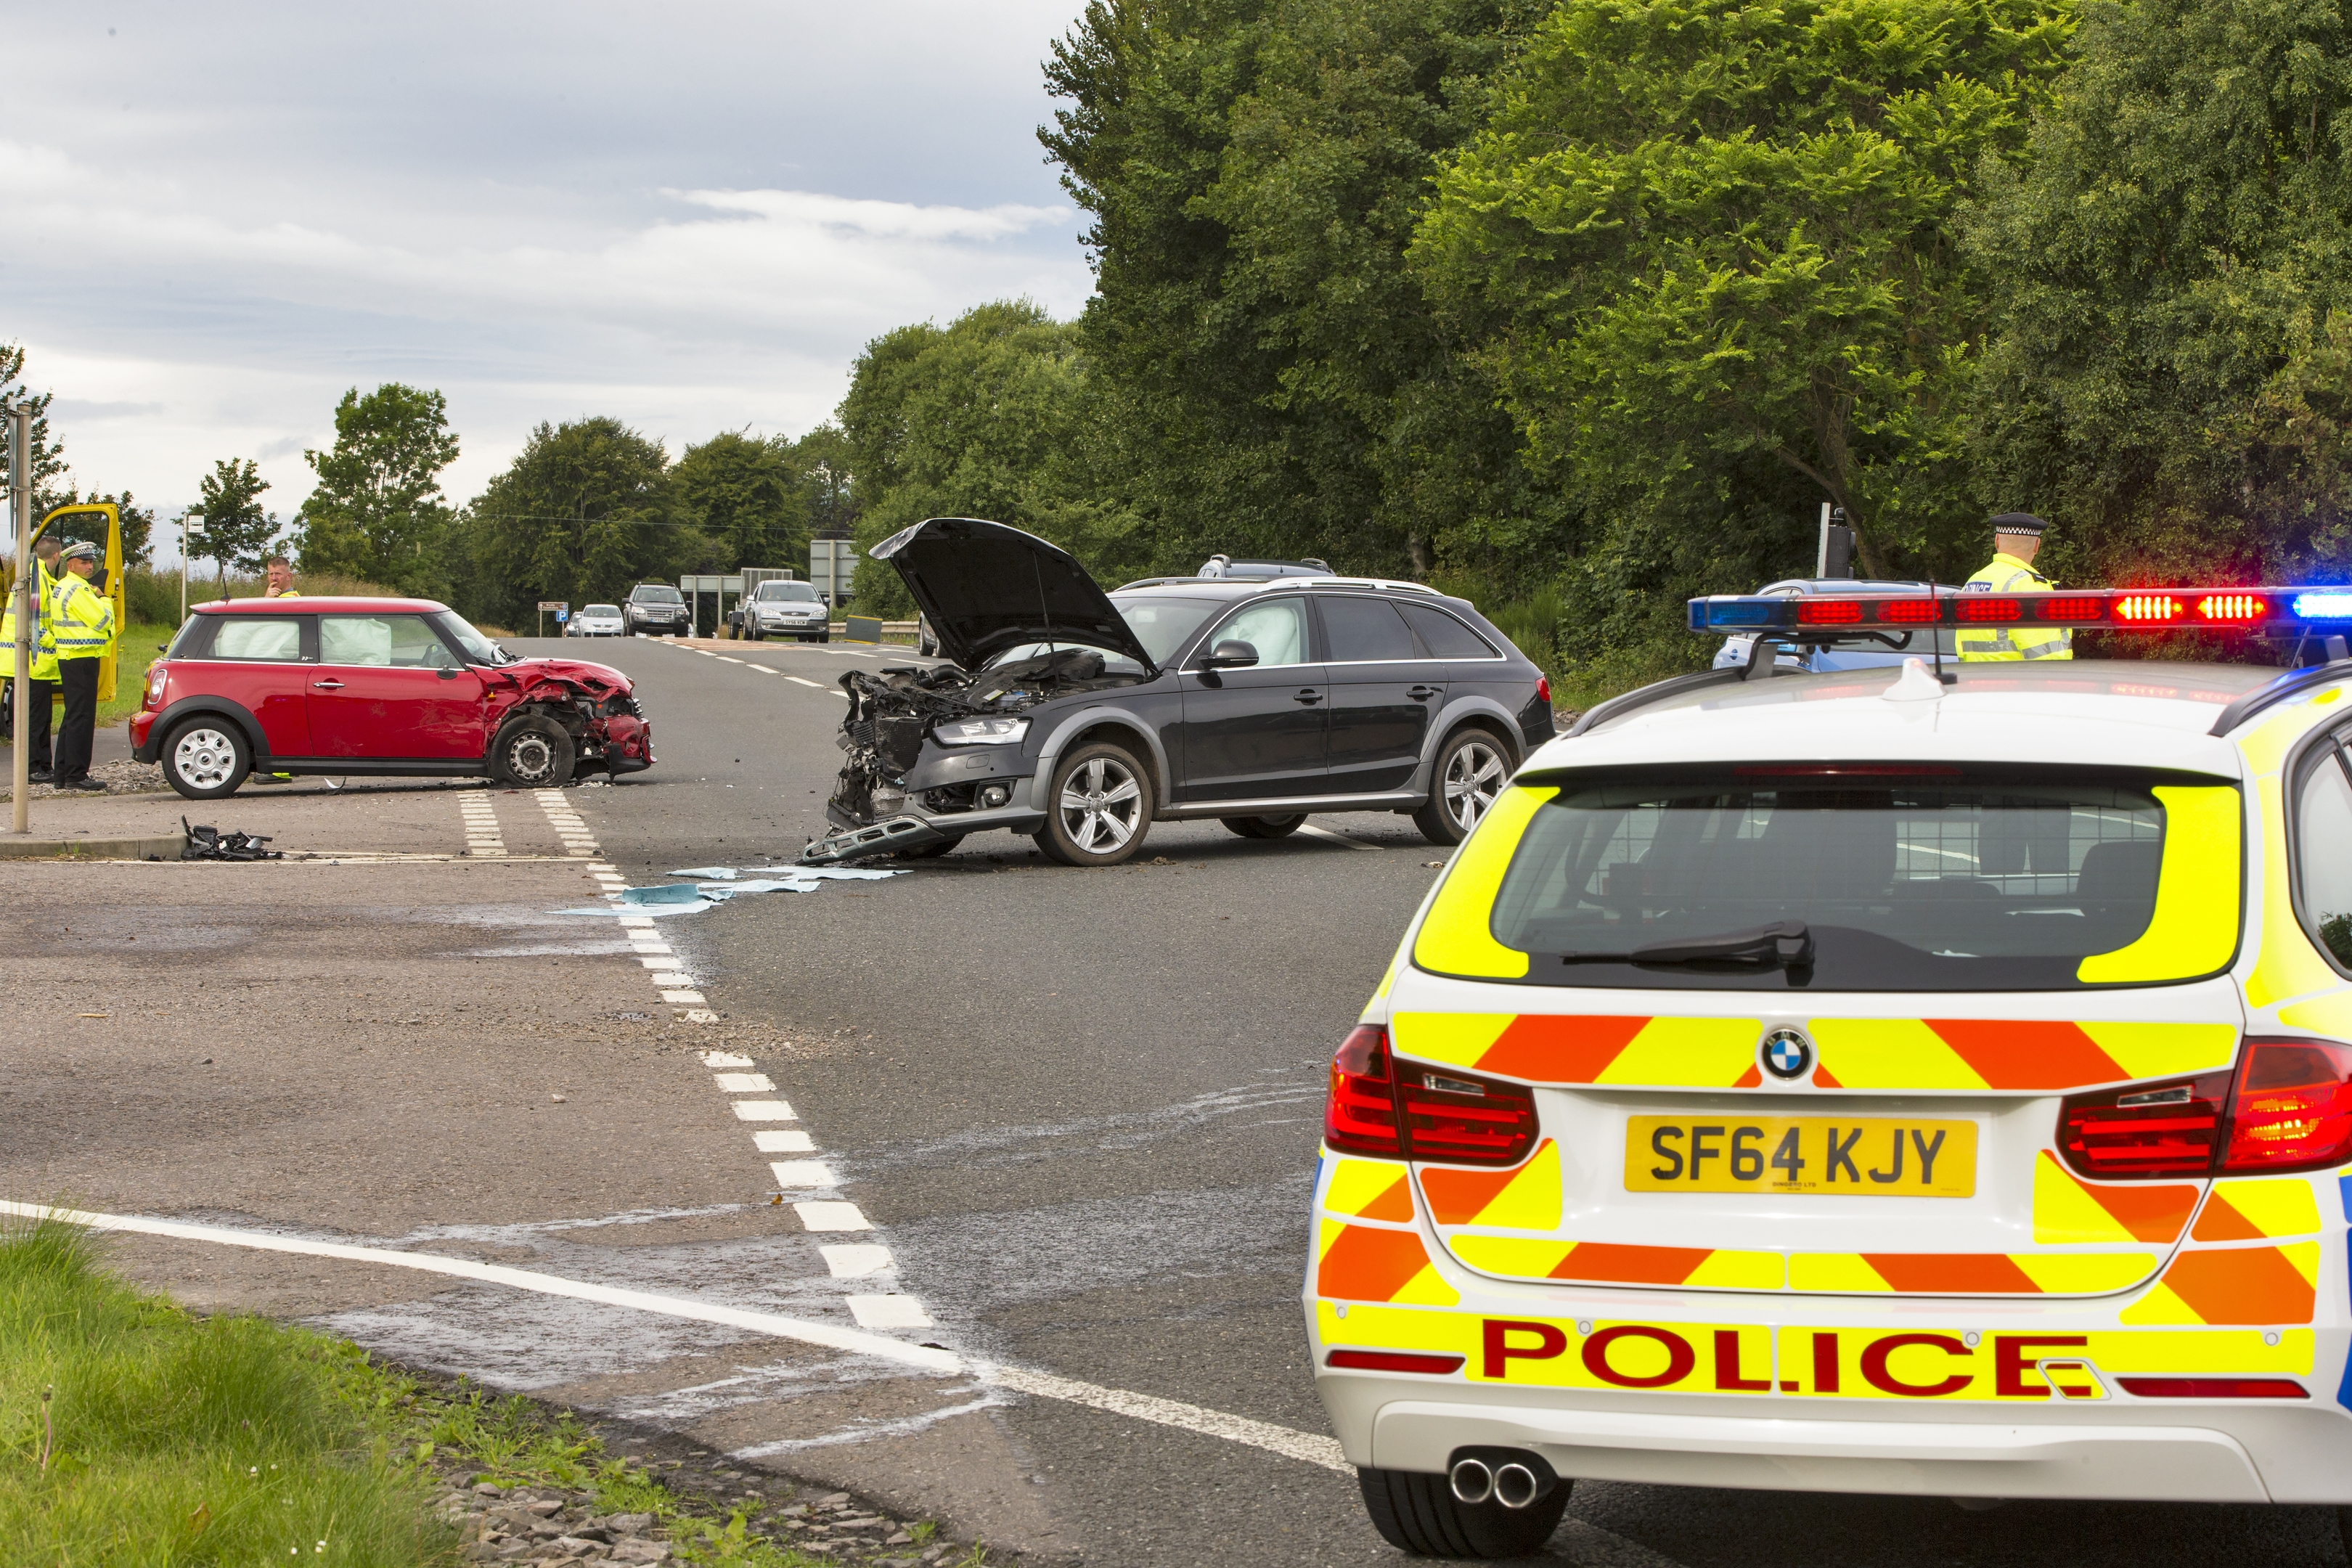 The accident happened at around 8.30am on the A96 Aberdeen to Inverness road